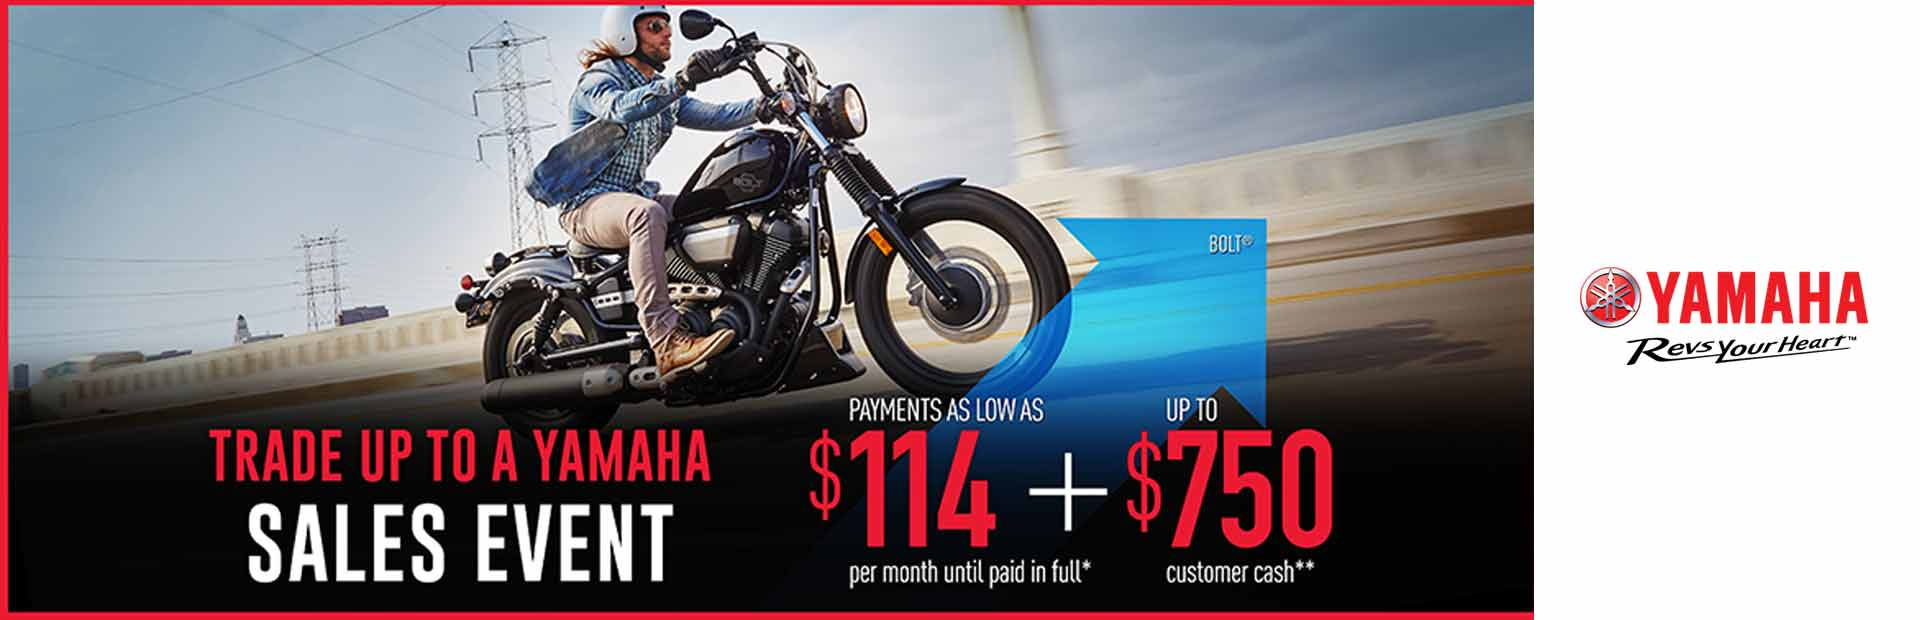 Yamaha: As Low As $114 + Up To $750 Customer Cash**